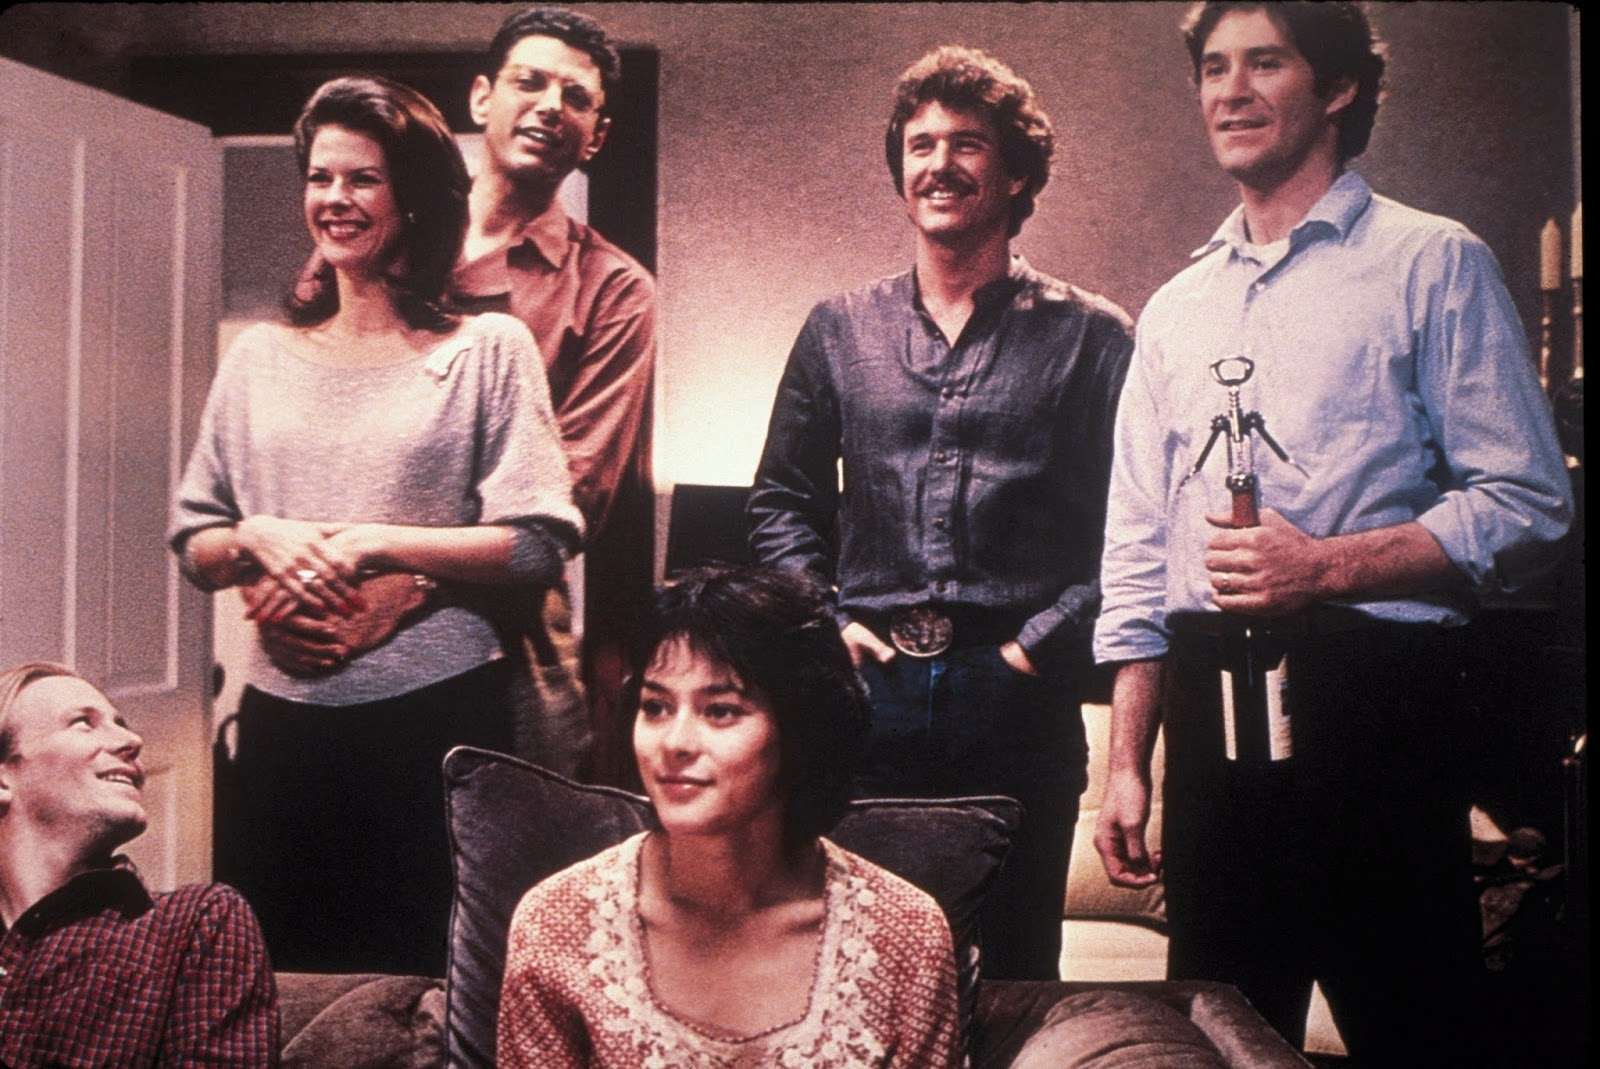 Six characters from the film The Big Chill in a group shot